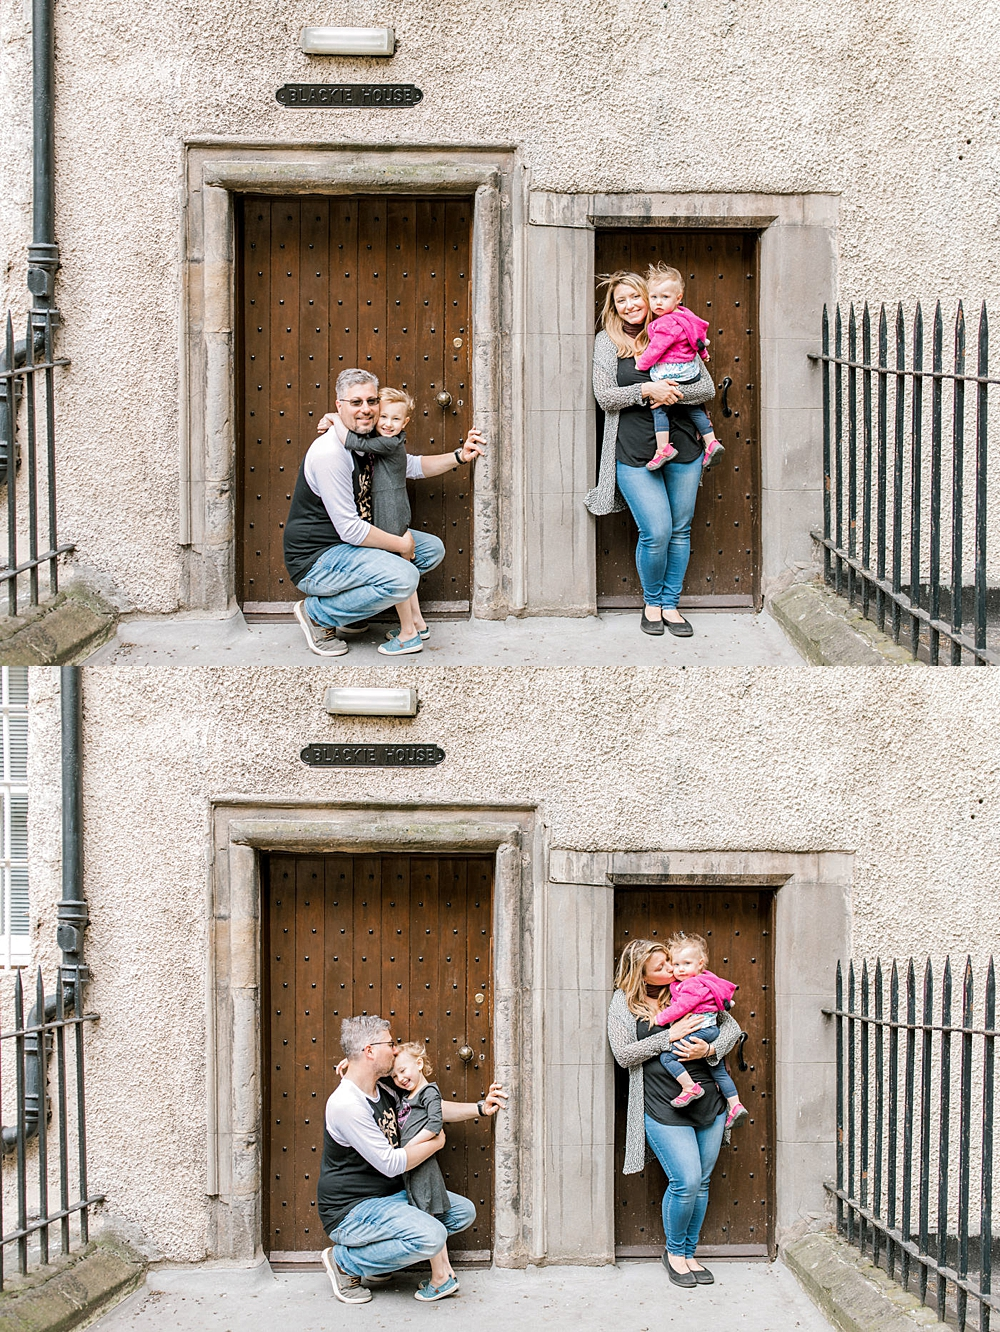 Family photographers Glasgow,The Gibsons,family photographers scotland,travel family photographers scotland,